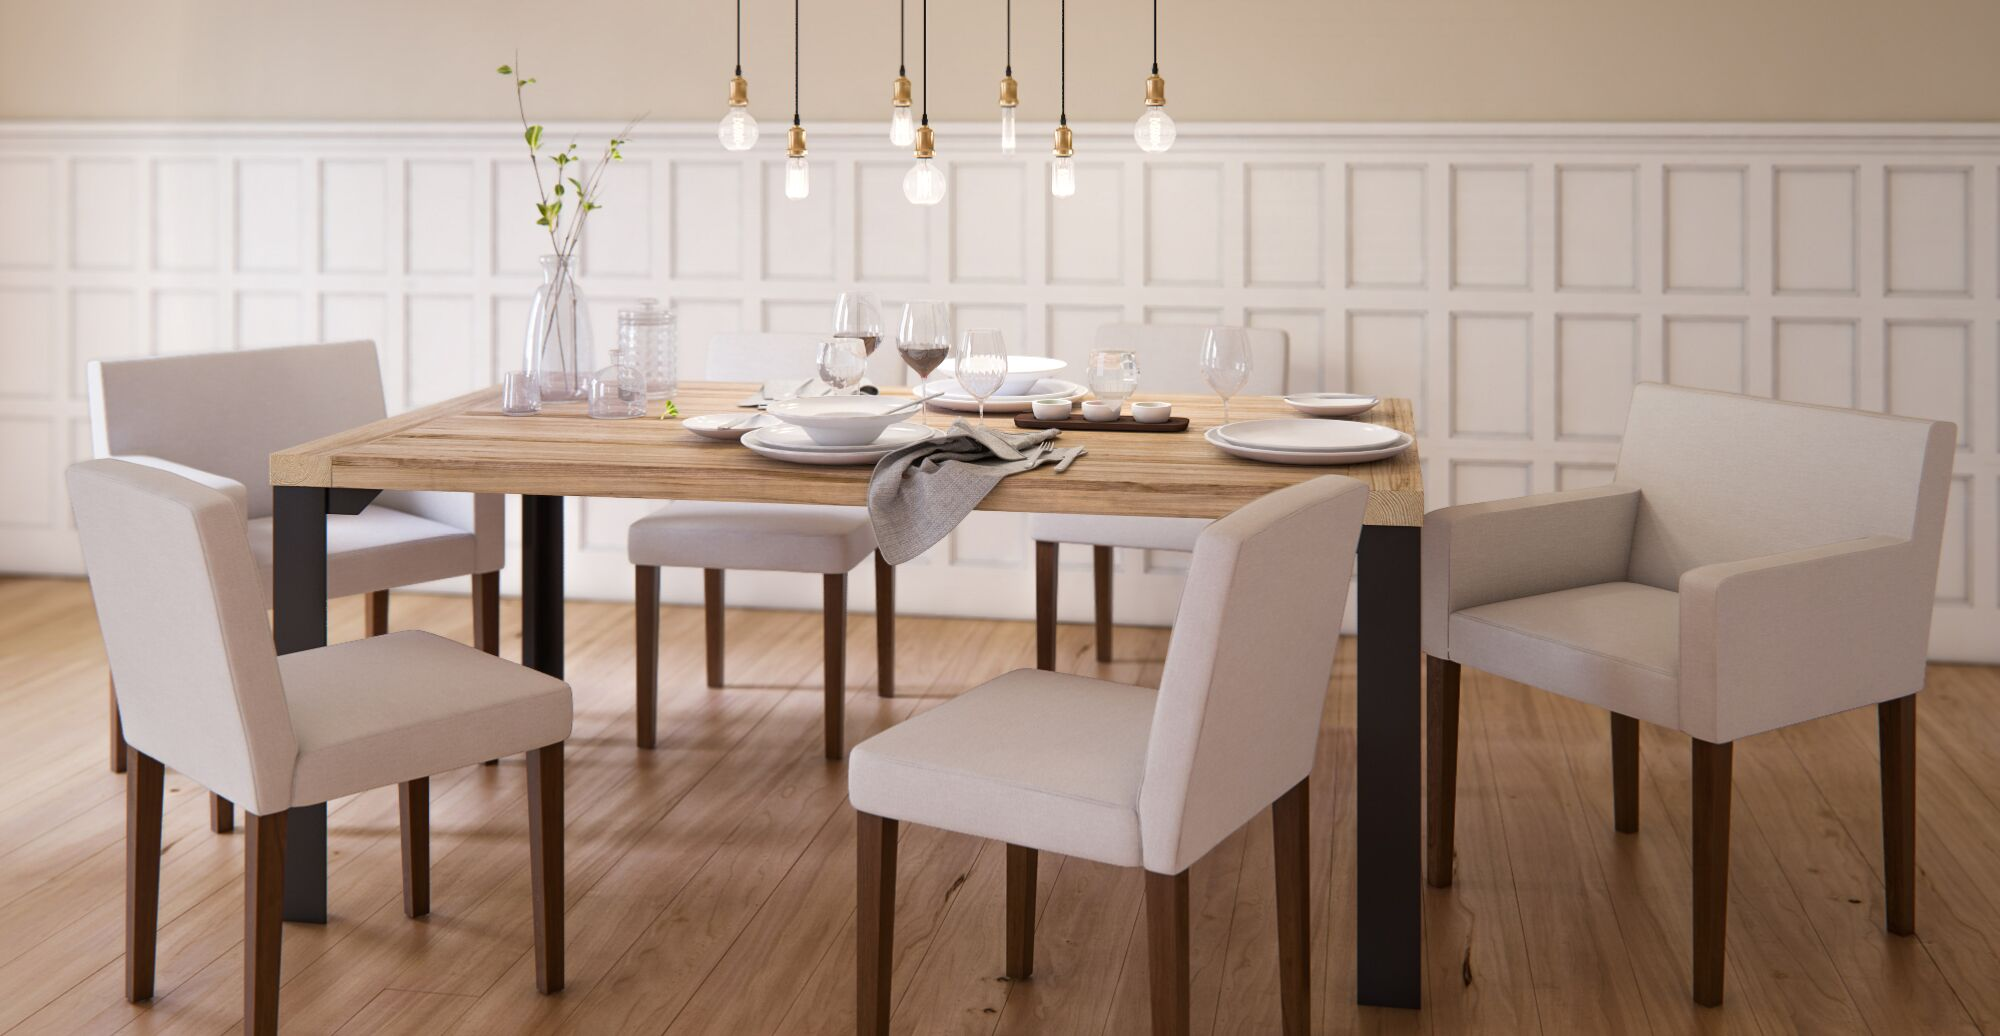 An ash wood dining table